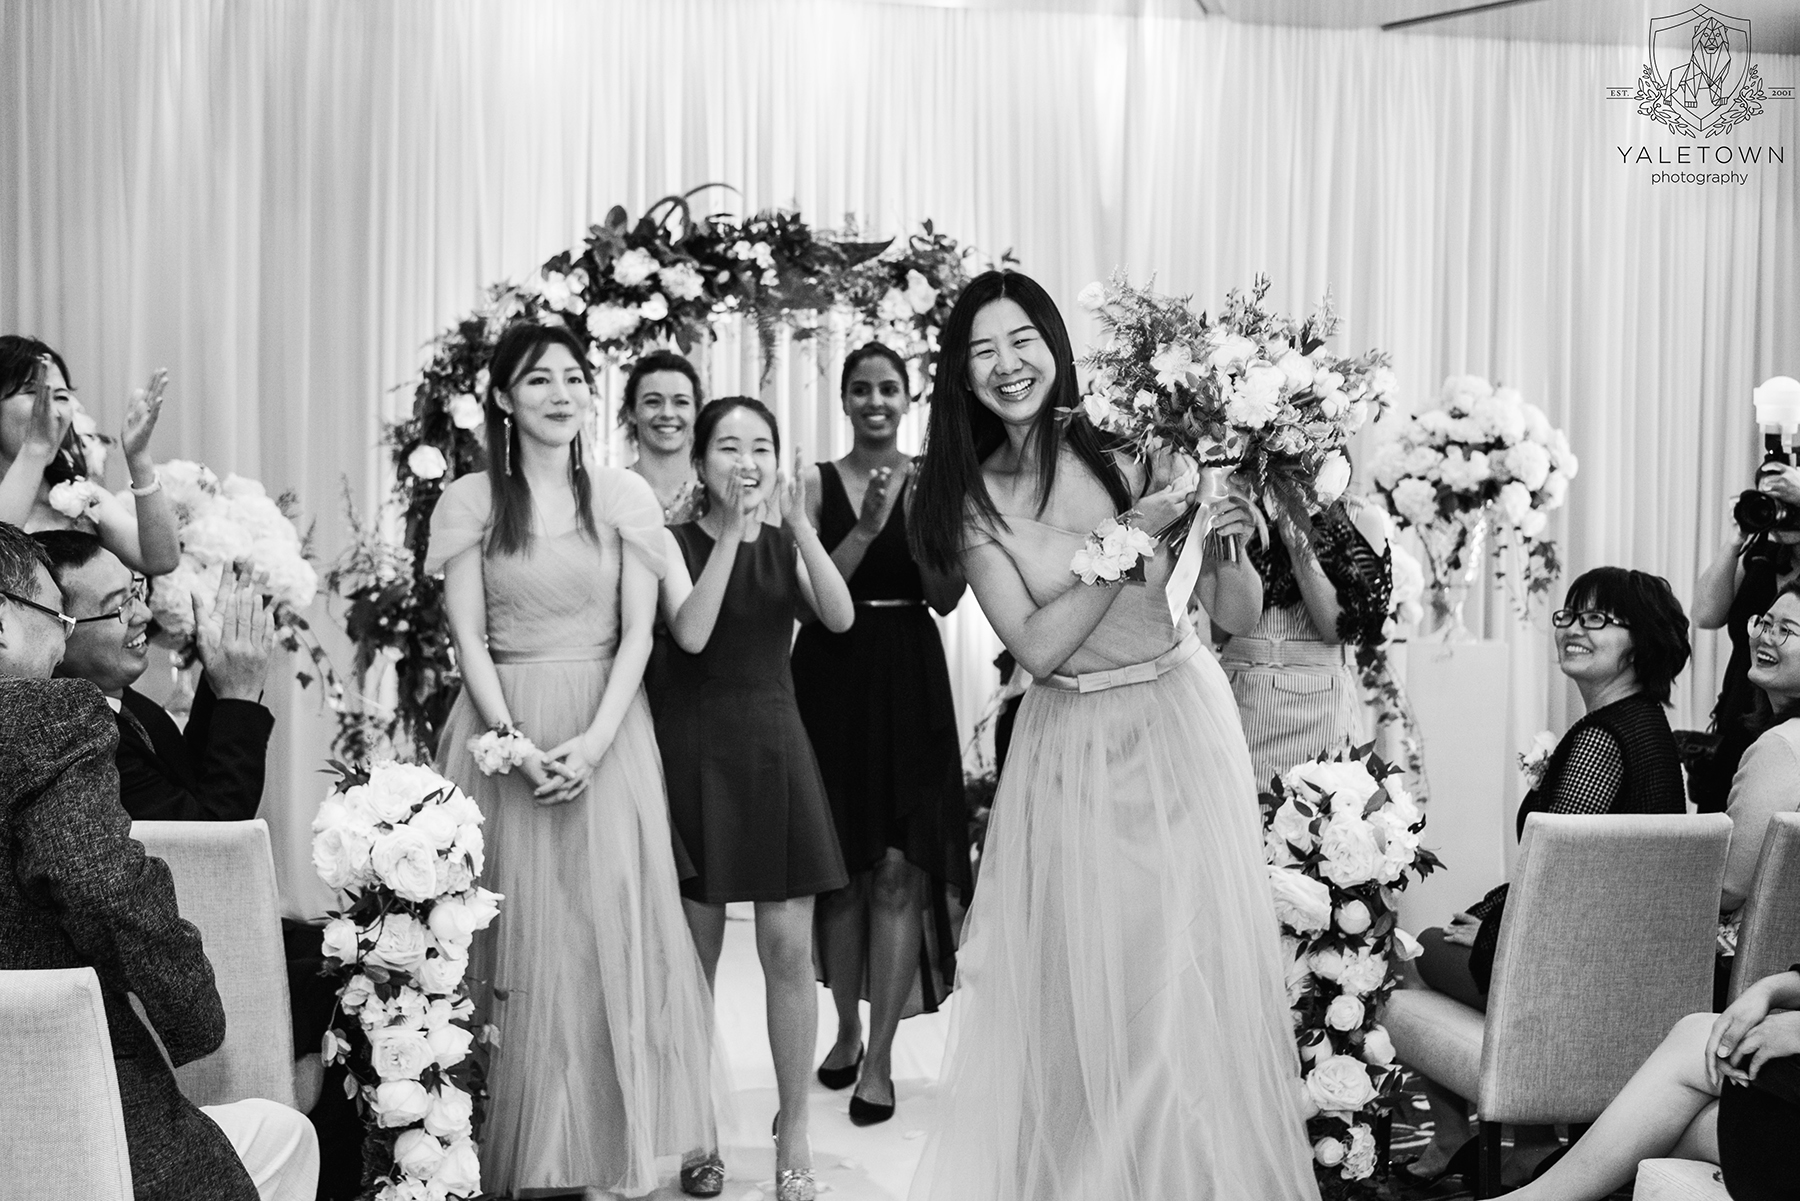 Bouquet-Toss-Rosewood-Hotel-Georgia-Vancouver-Wedding-Yaletown-Photography-photo